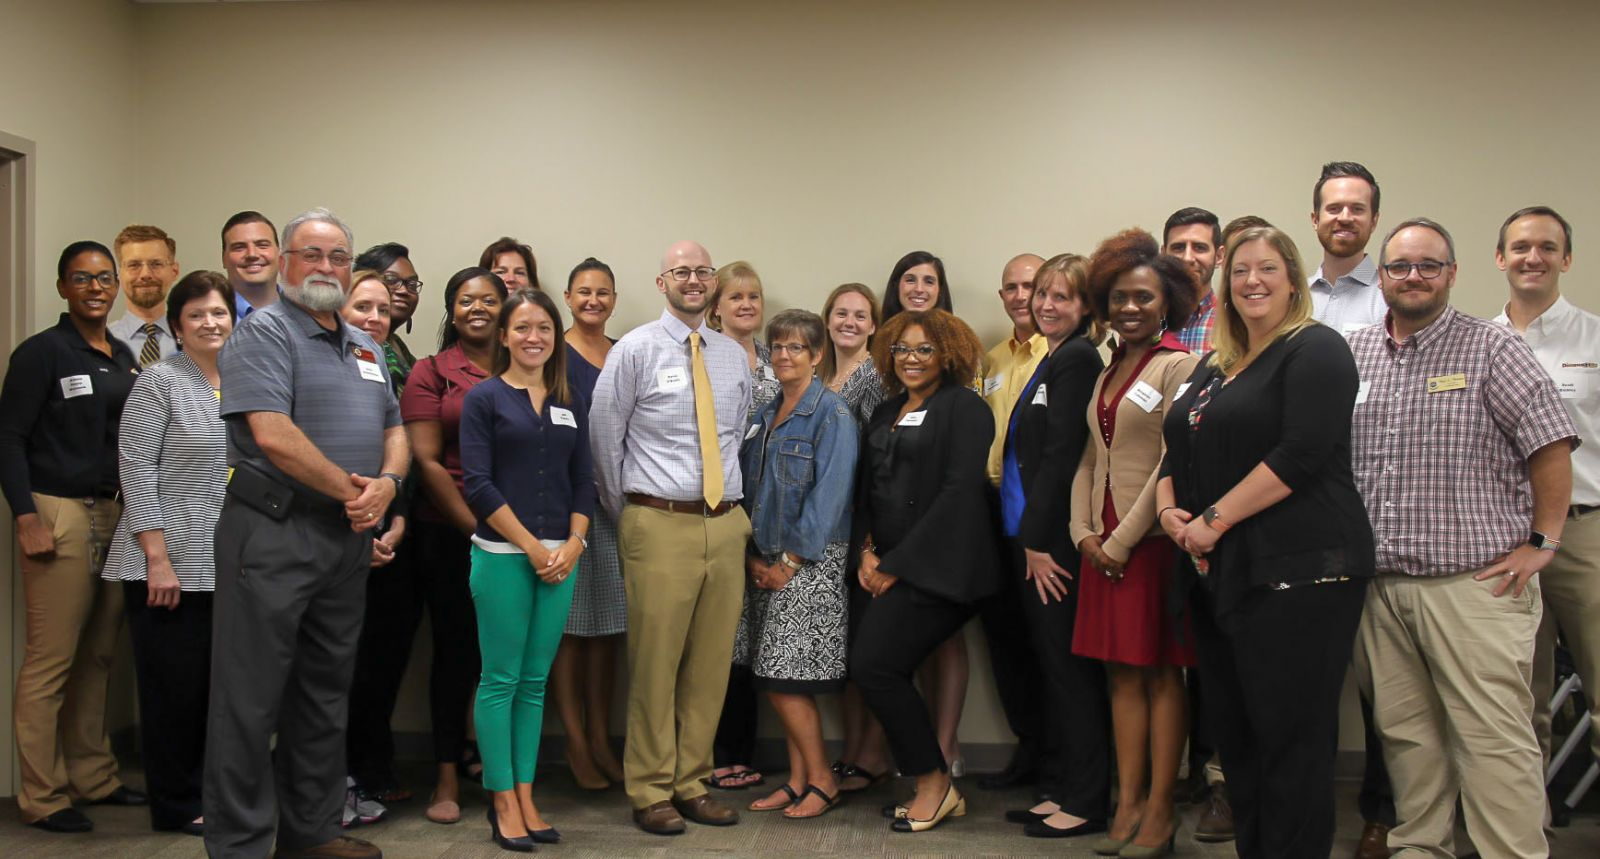 Members of the 2018-2019 ALDP cohort at Florida State University.